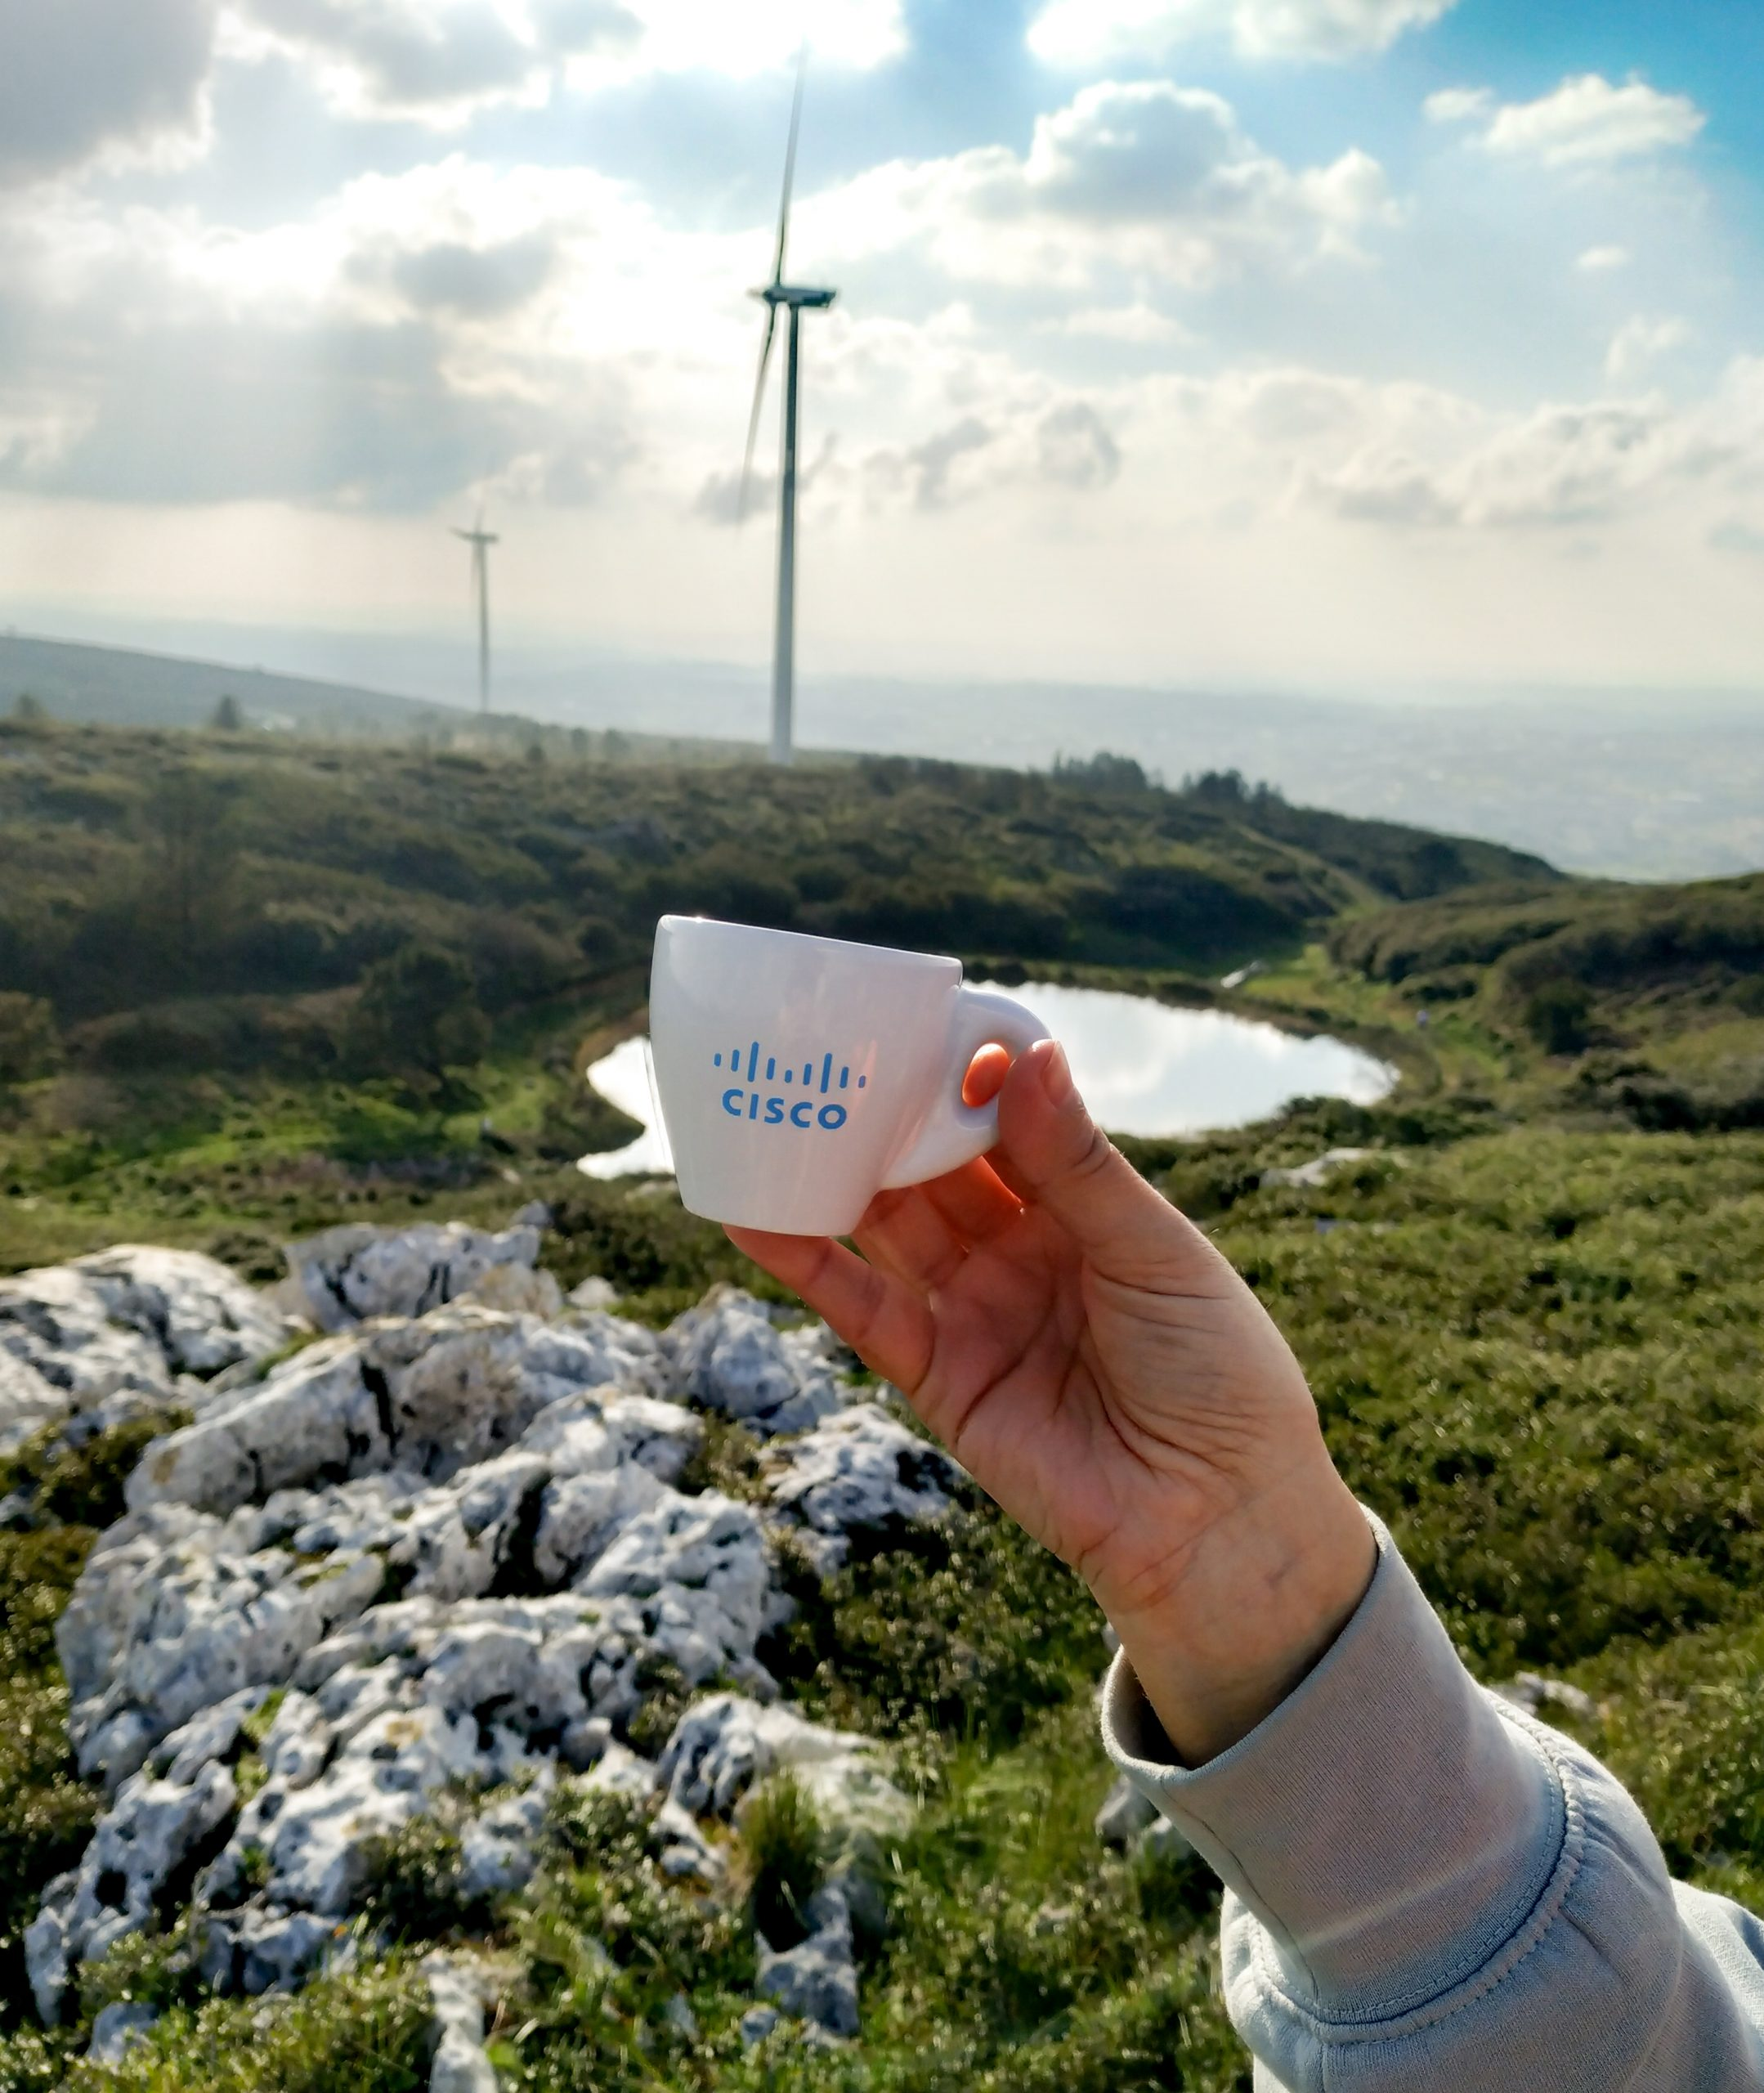 Holding up espresso cup overlooking grassy hills and rocks.